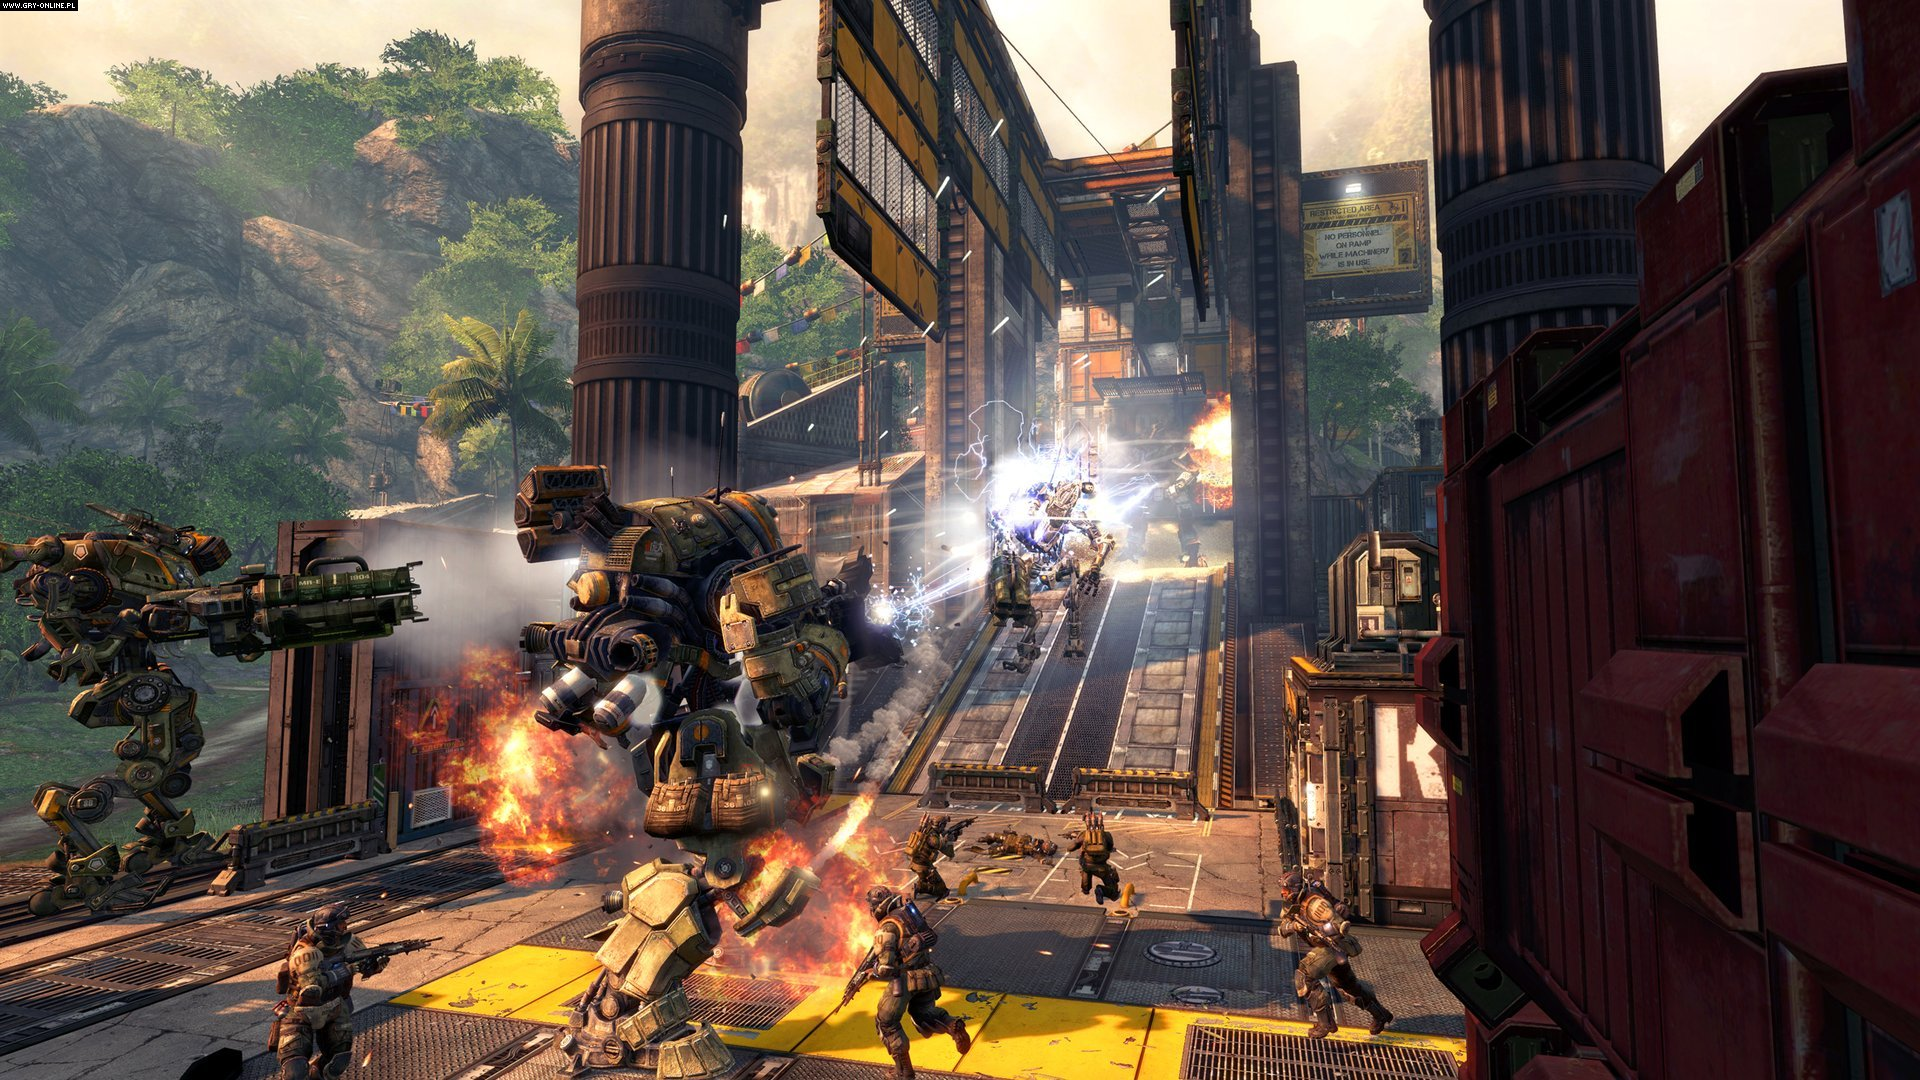 Titanfall PC, X360, XONE Games Image 5/39, Respawn Entertainment, Electronic Arts Inc.